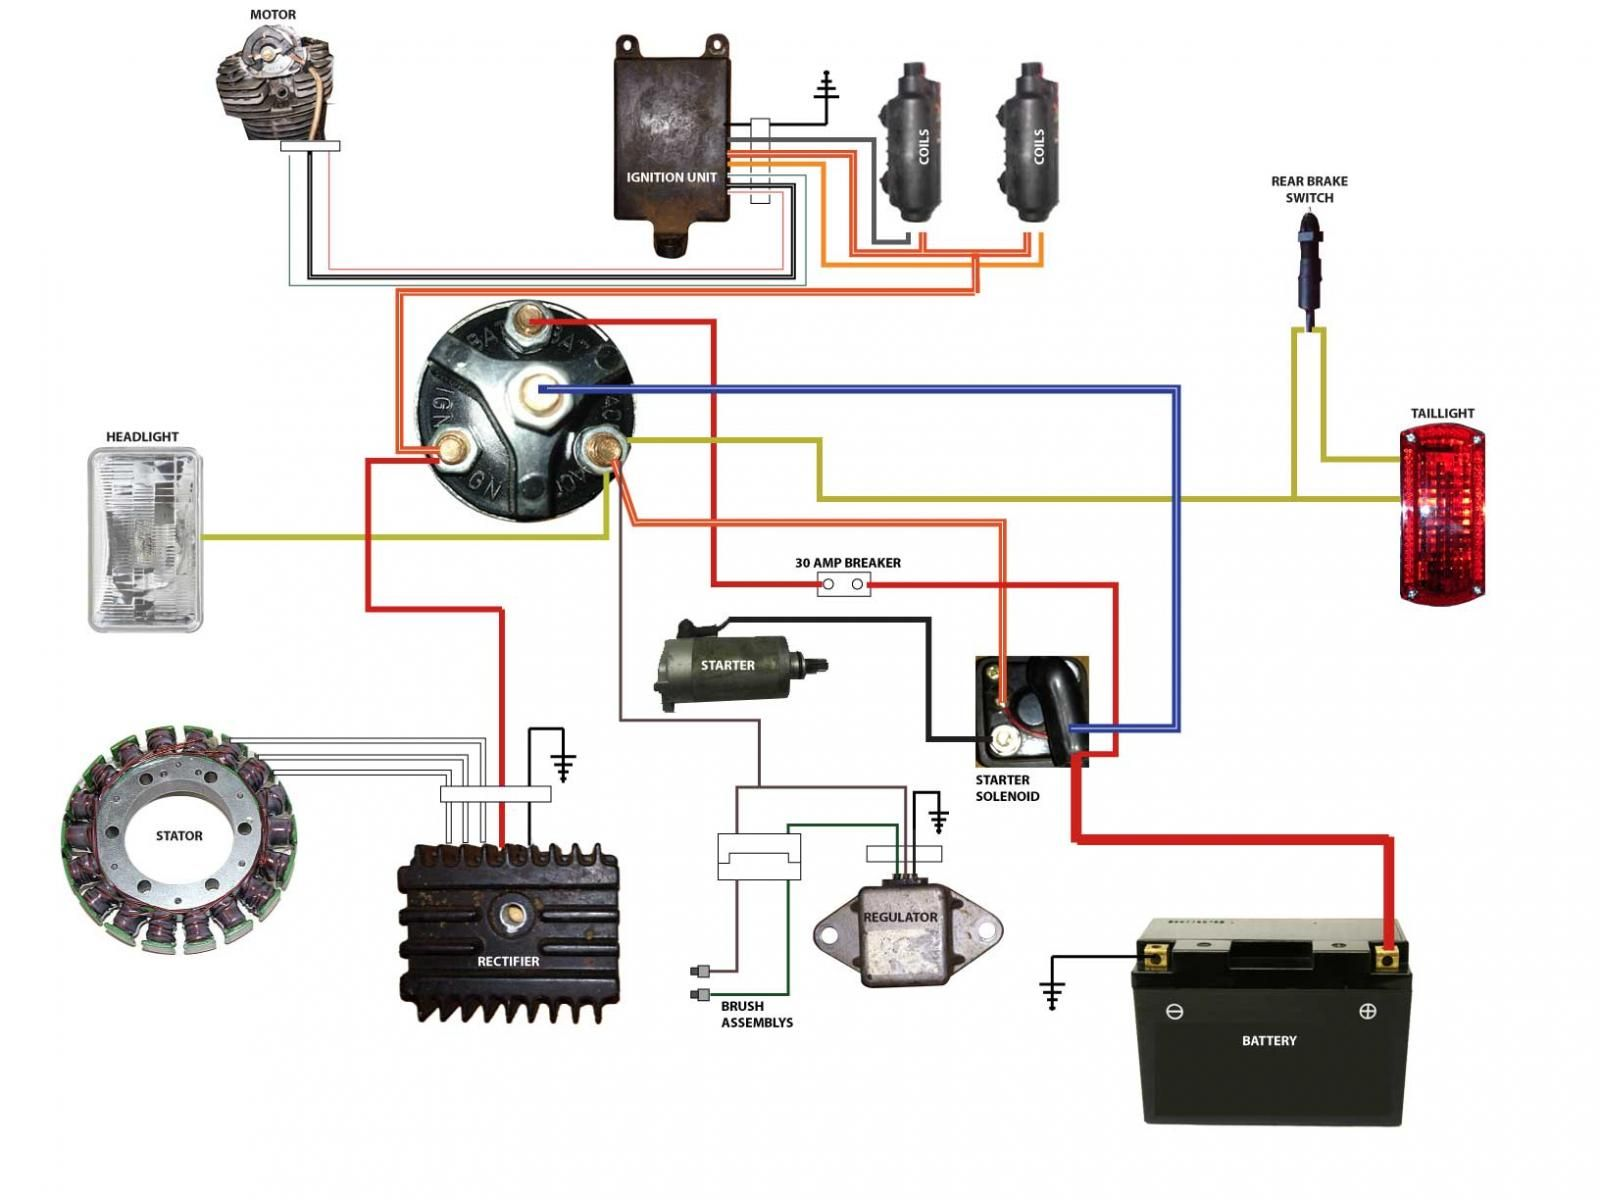 small resolution of yamaha xs400 wiring wiring diagram mega xs400 special ii engine wiring